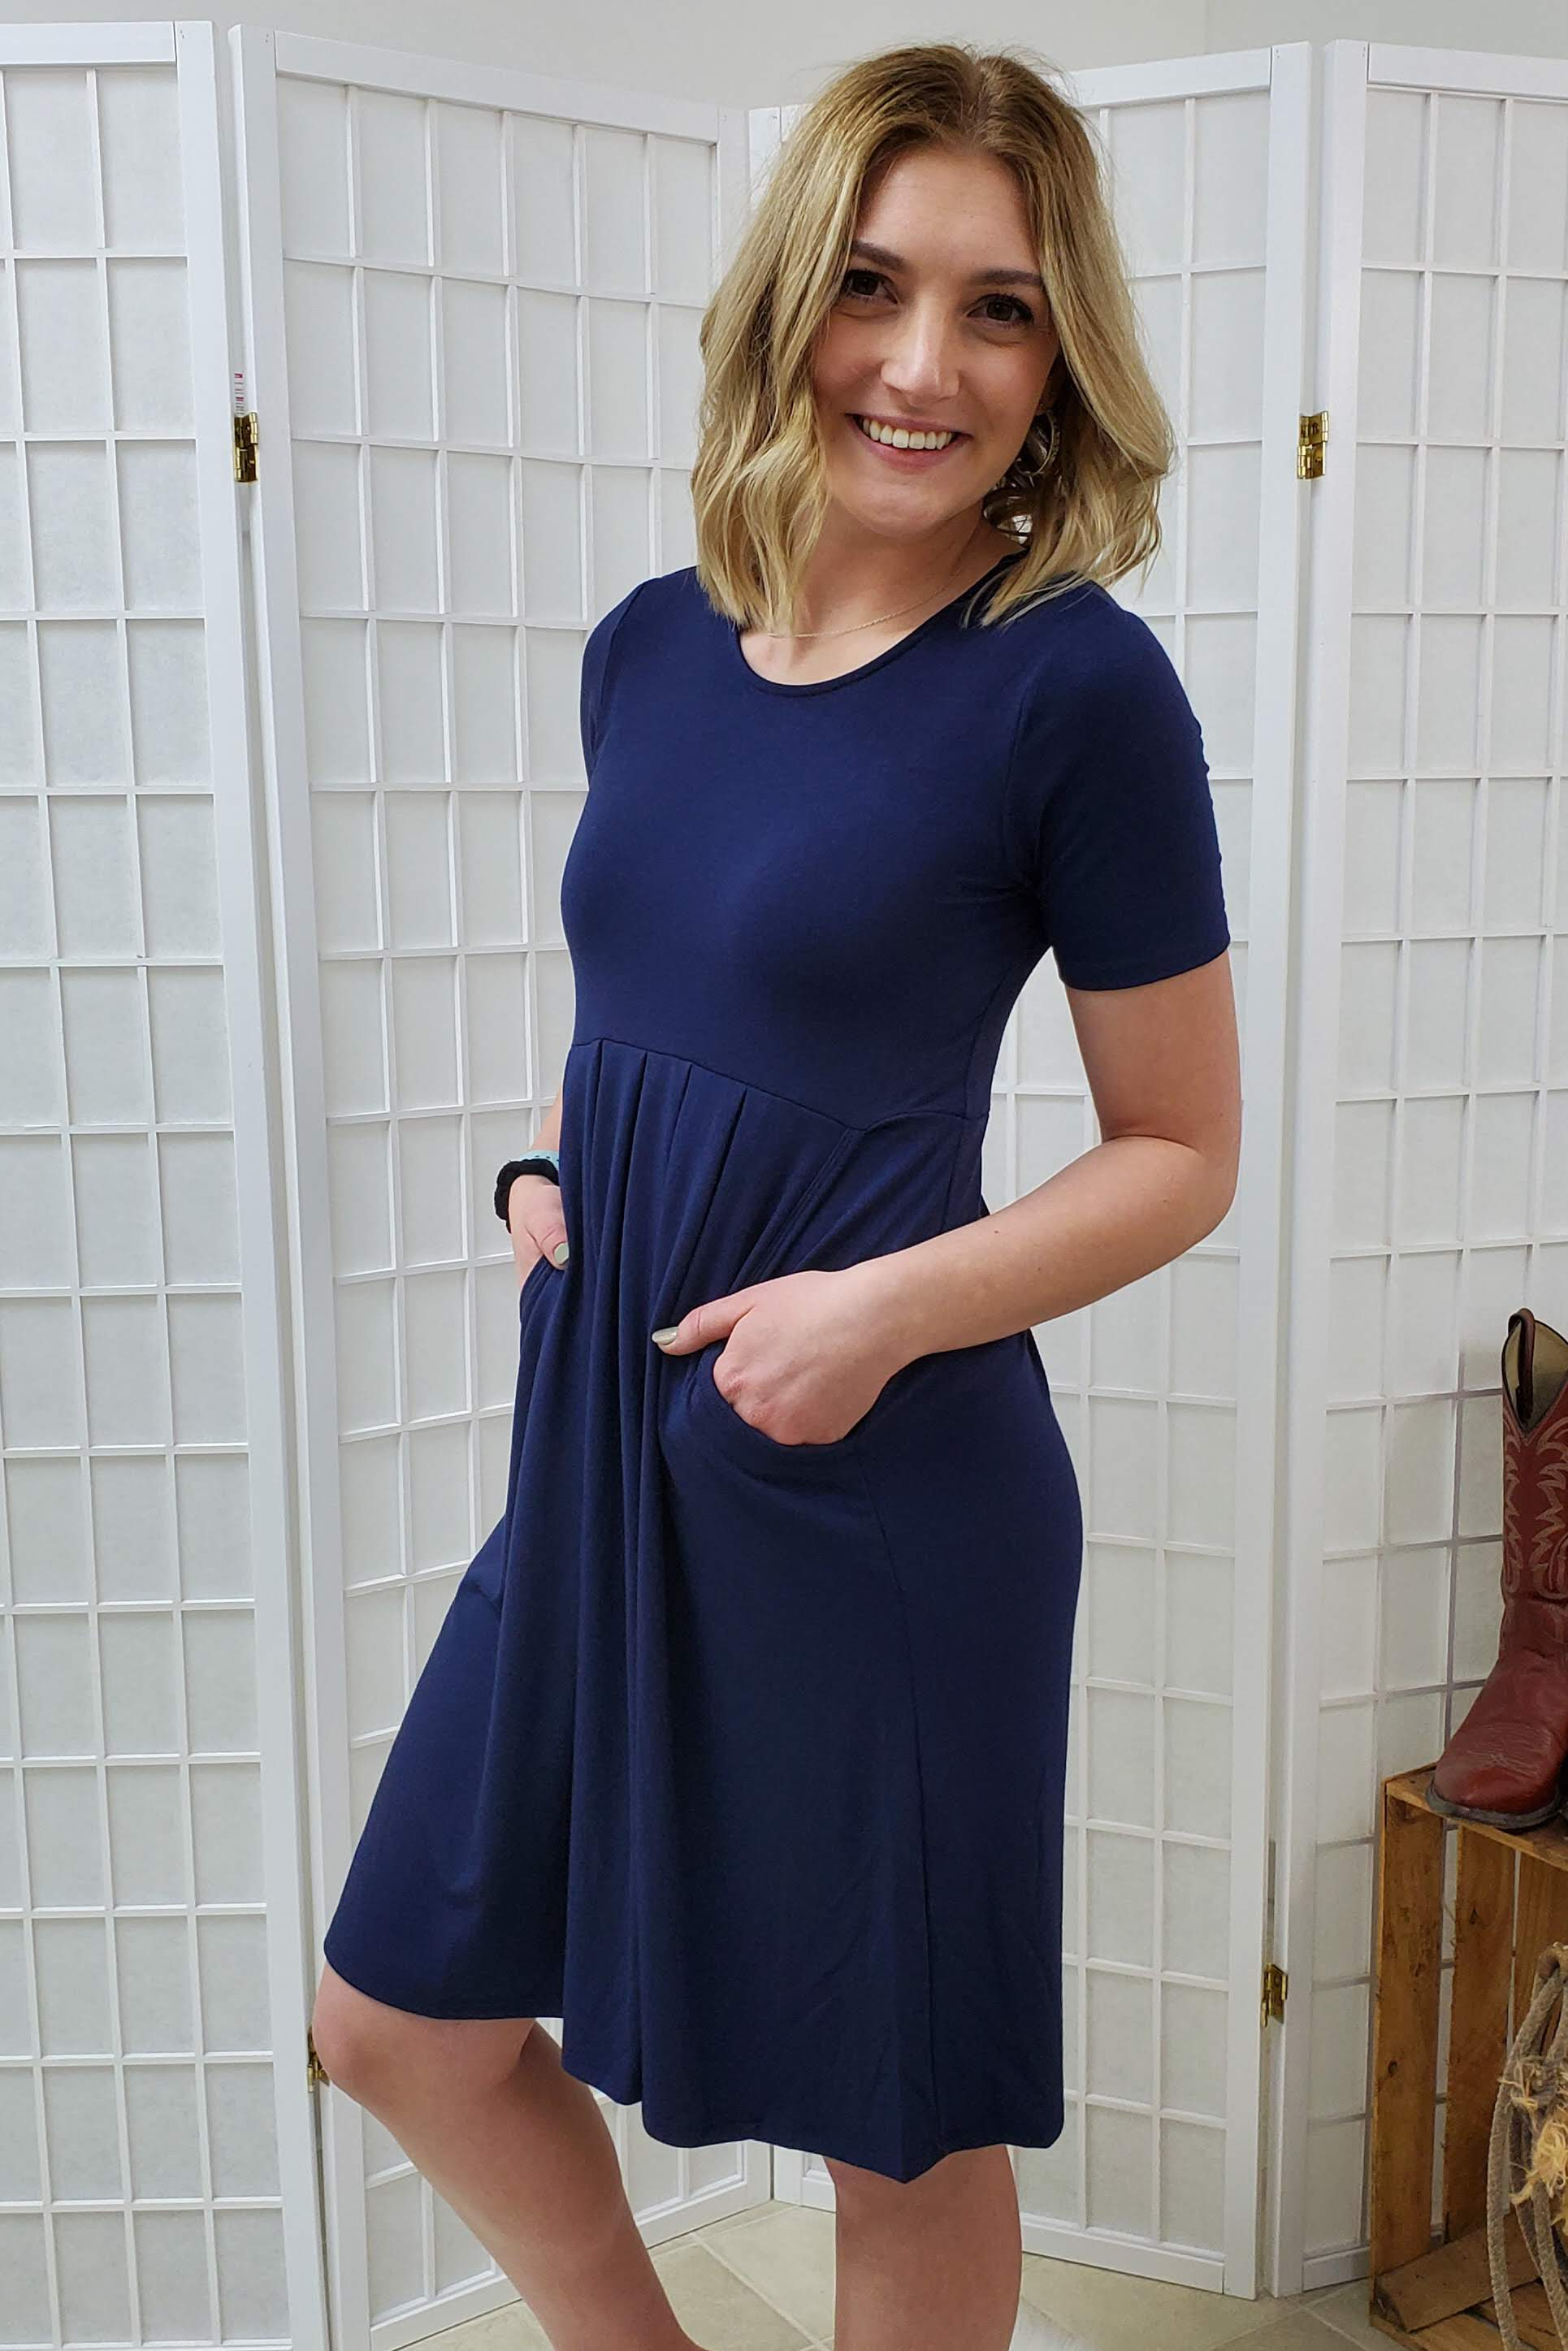 Bishop Navy Dress